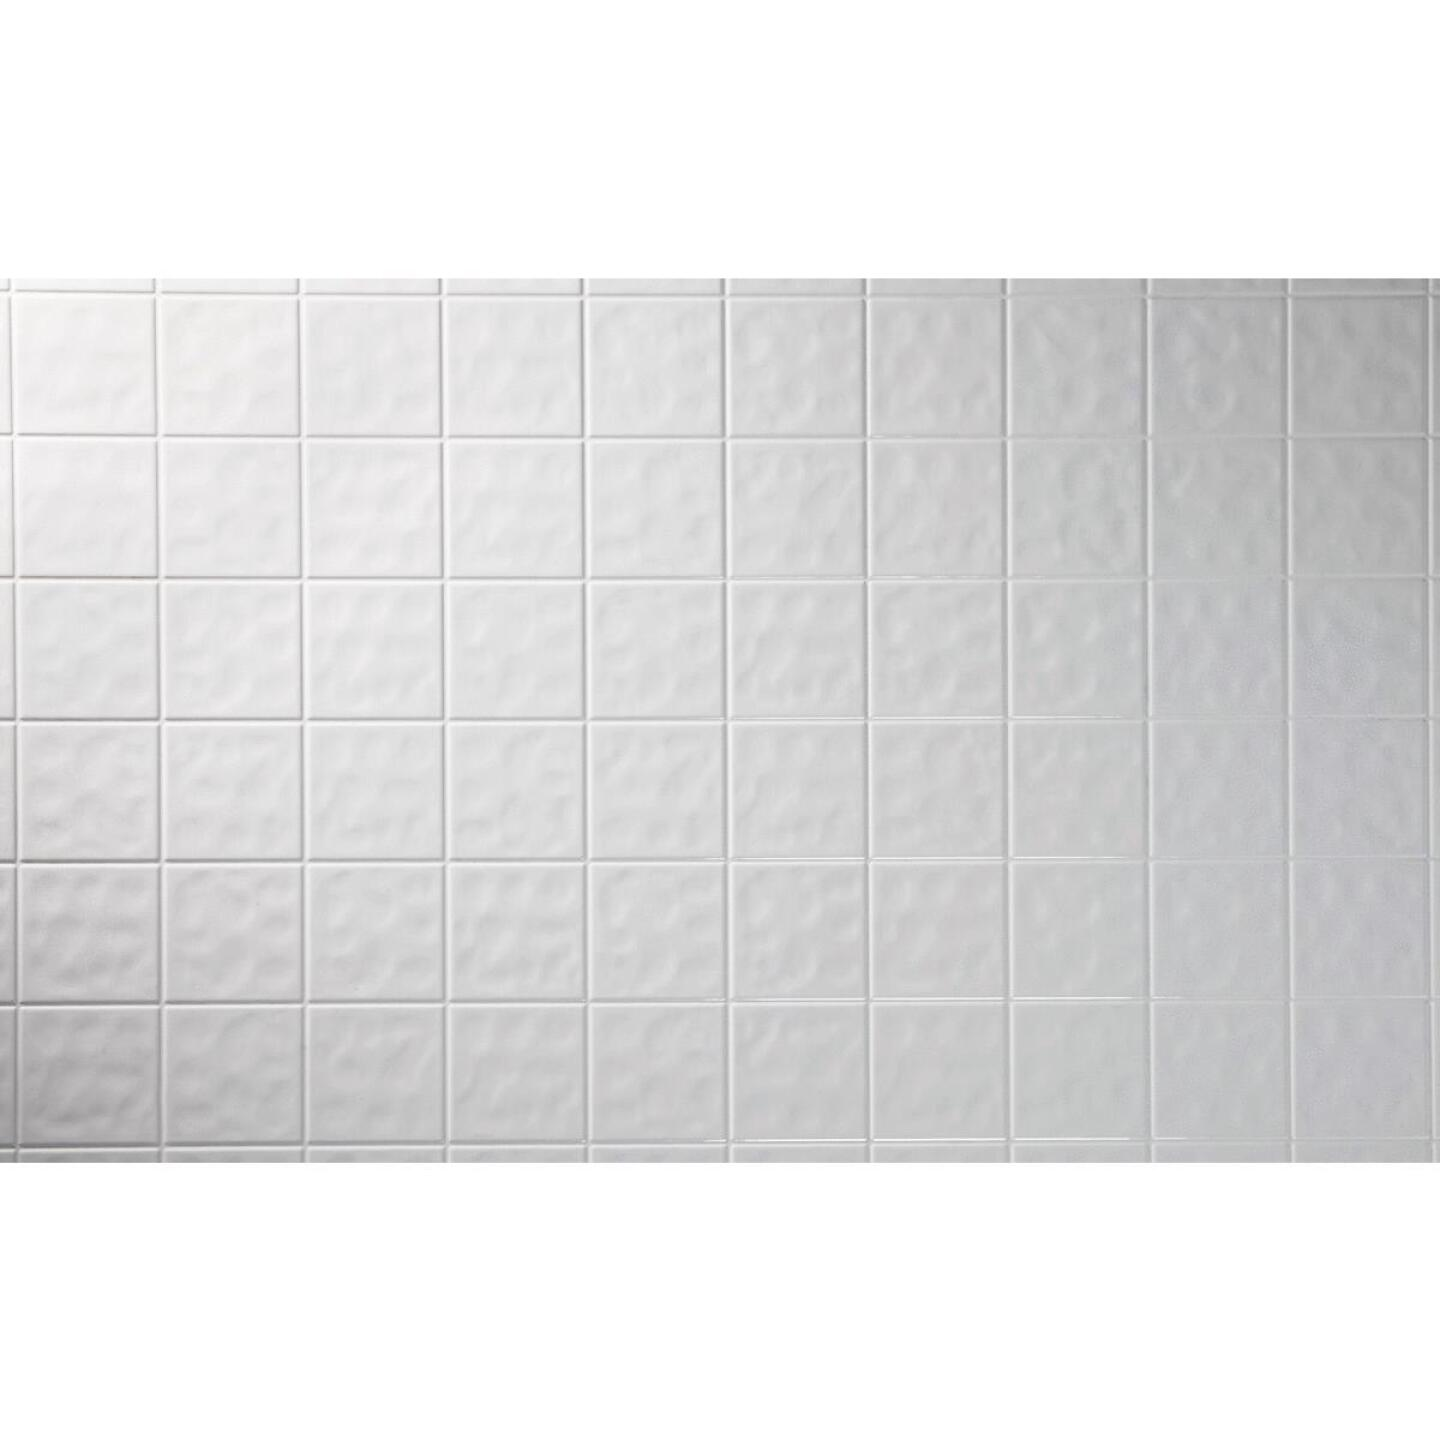 DPI AquaTile 4 Ft. x 8 Ft. x 1/8 In. White Tileboard Wall Tile Image 2